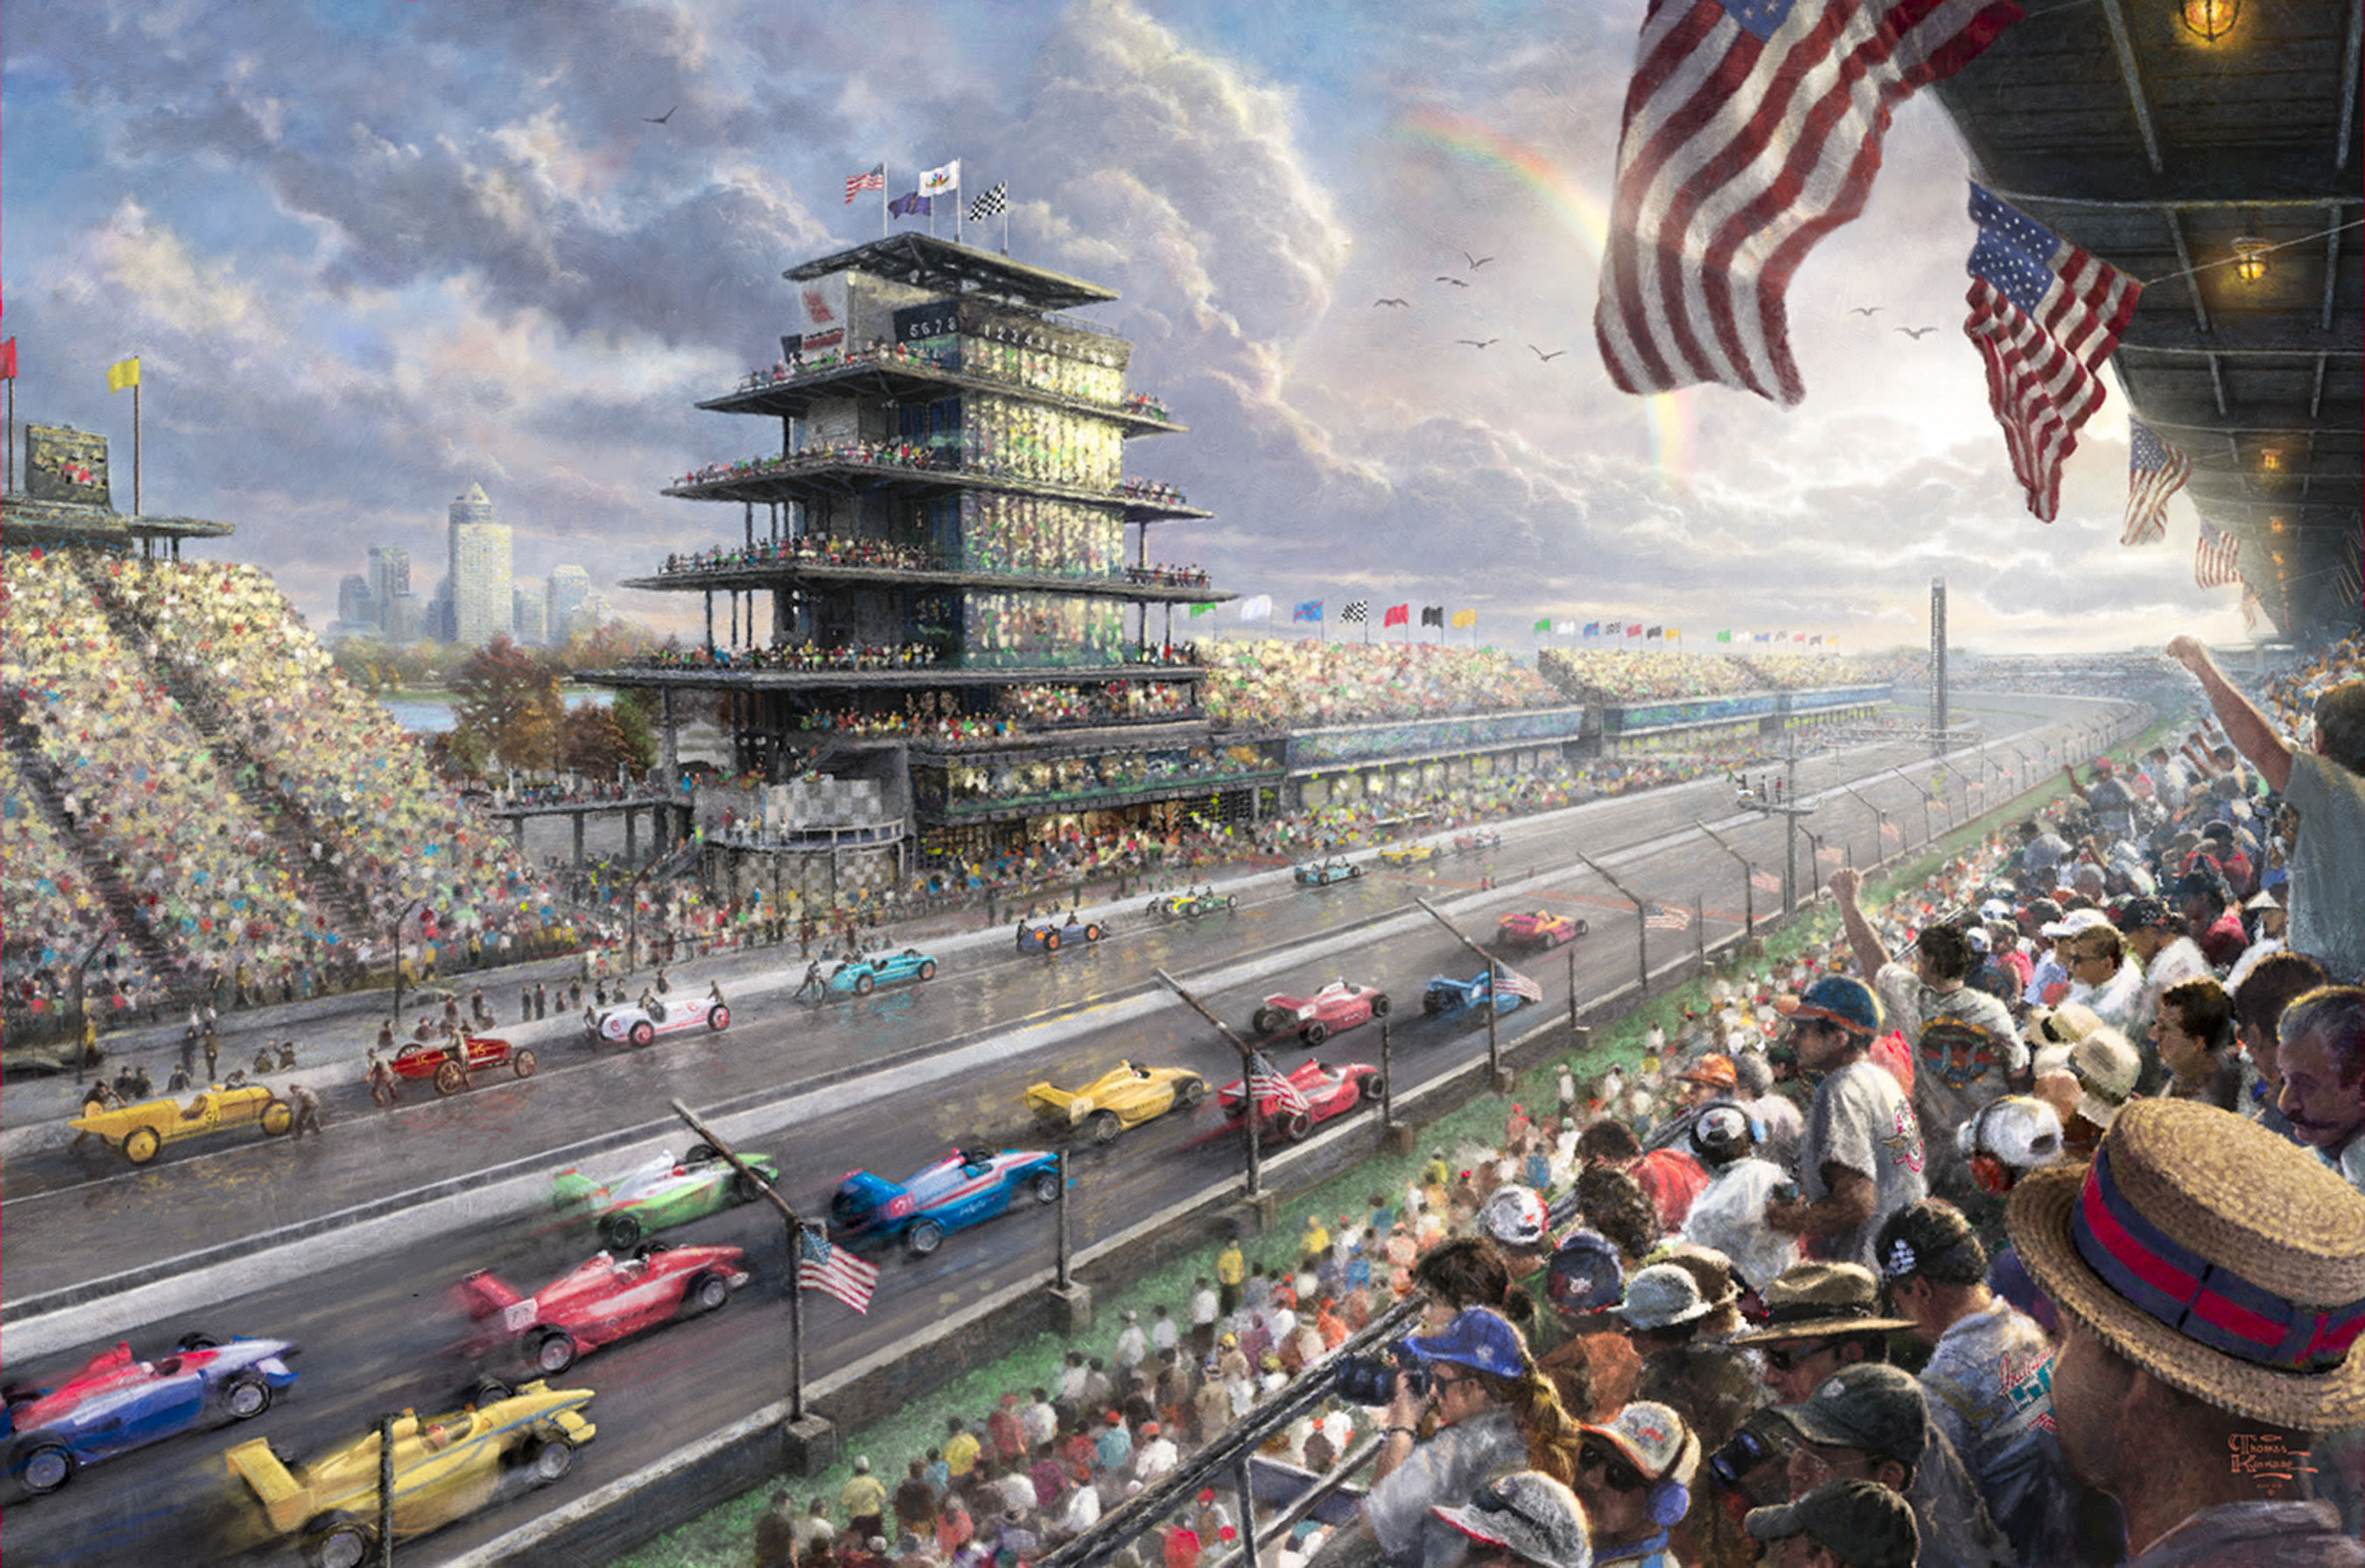 """This undated photo provided by The Thomas Kinkade Company via PR Newswire shows Thomas Kinkade's New Studio Masterwork, """"Indy Excitement, 100 Years of Racing at Indianapolis Motor Speedway."""" Kinkade, whose brushwork paintings of idyllic landscapes, cottages and churches have been big sellers for dealers across the United States, died Friday, April 6, 2012, a family spokesman said. (AP Photo/PR Newswire, The Thomas Kinkade Company)"""